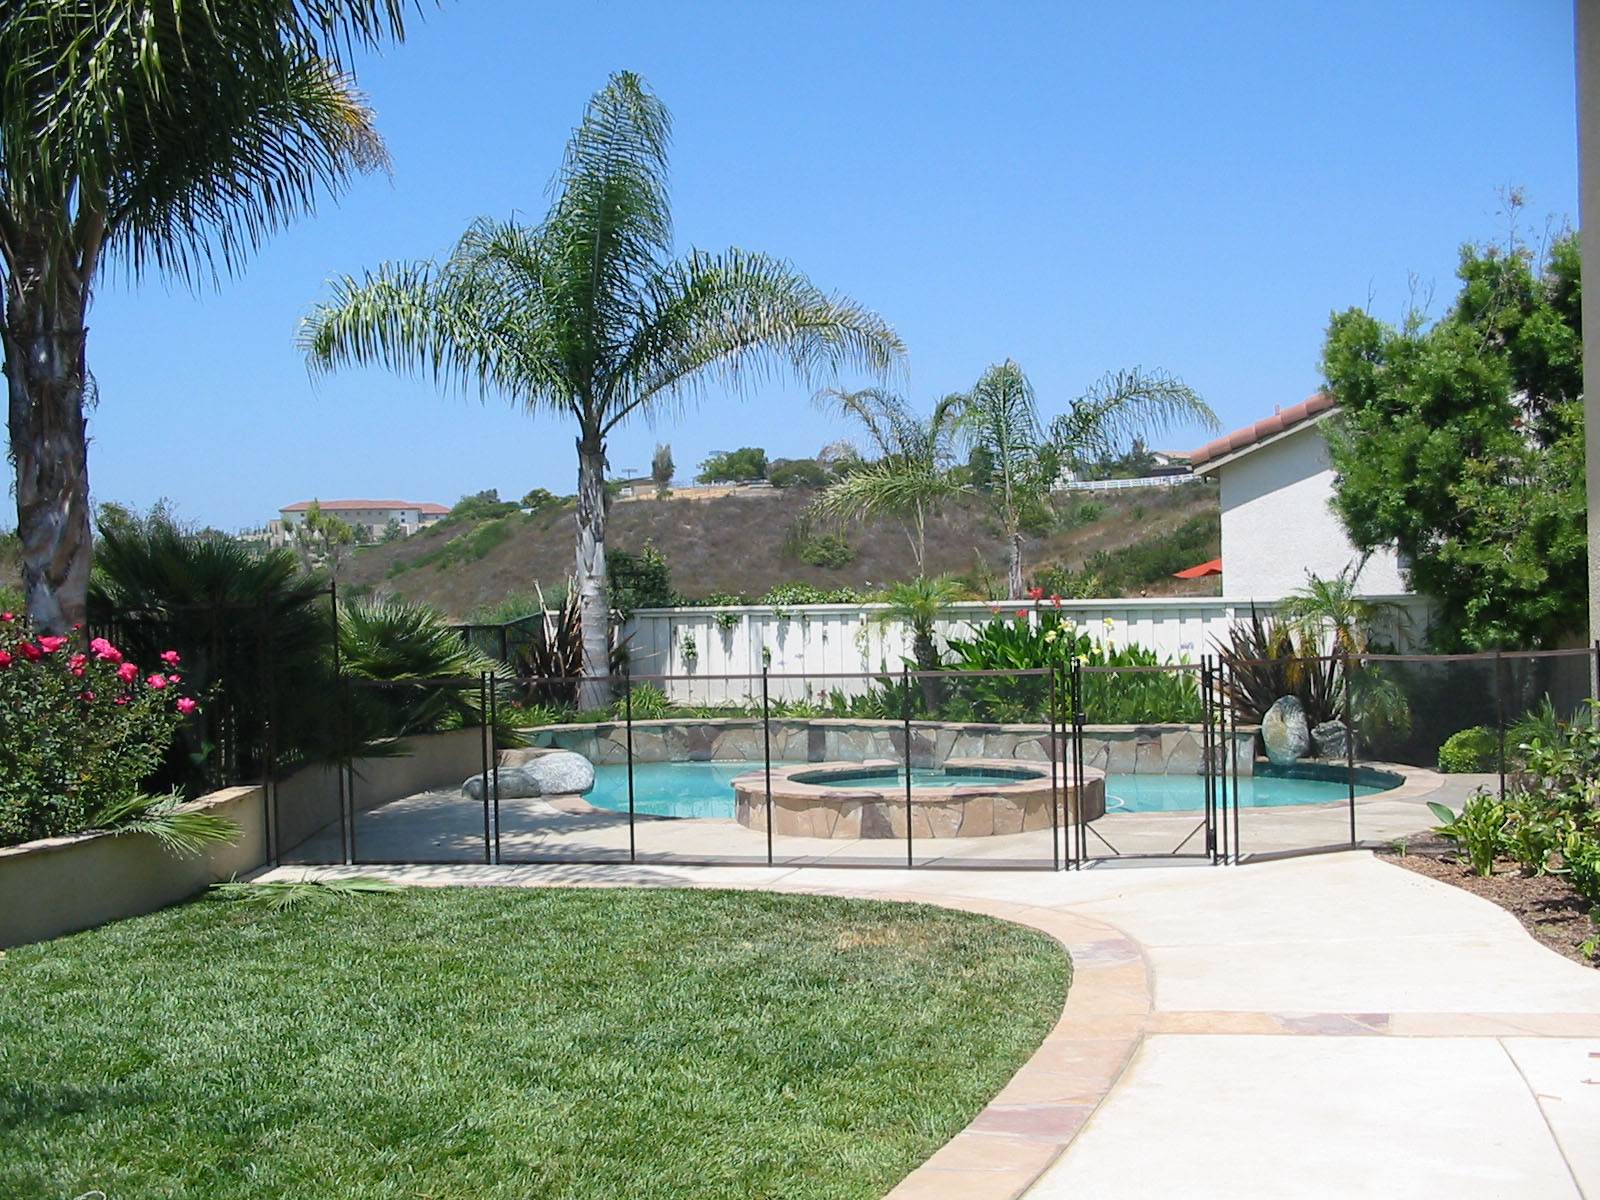 The Best Pool Fences